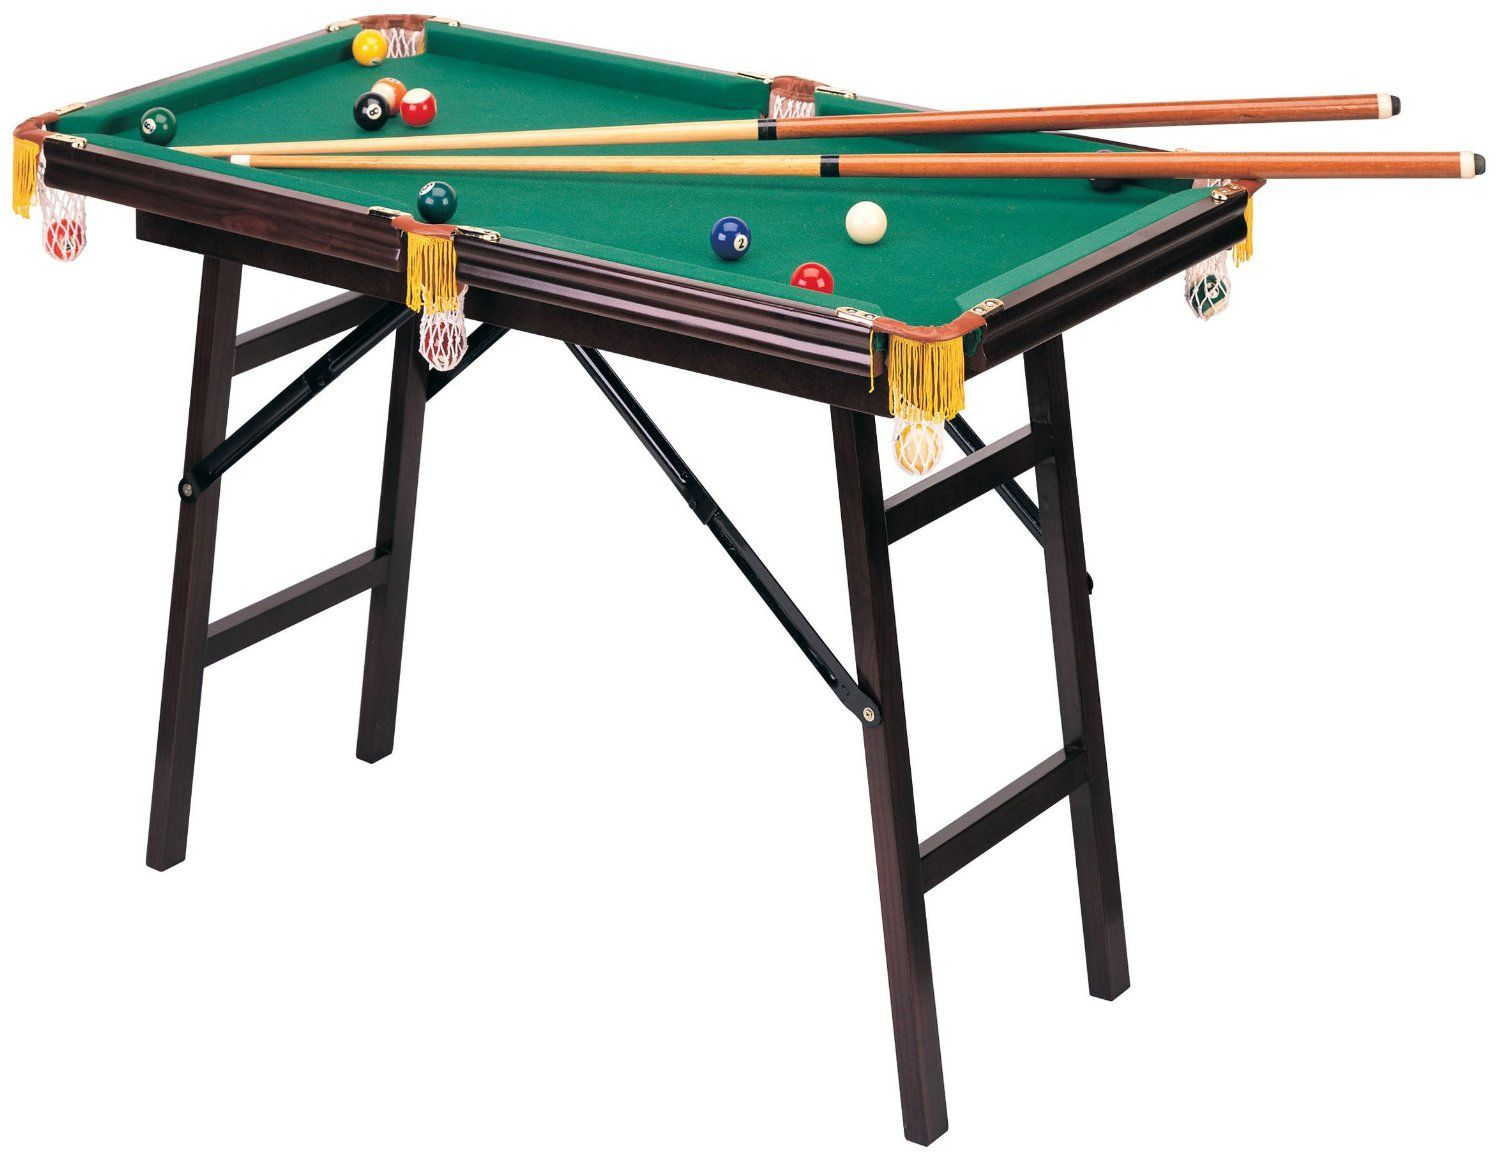 DIY Pool Tables Ideas   Http://sfor.terredarte.net/diy Pool Tables Ideas/ :  #PoolTables DIY Pool Tables U2013 The Pool Is A Pleasant, Entertaining And  Relaxing ...